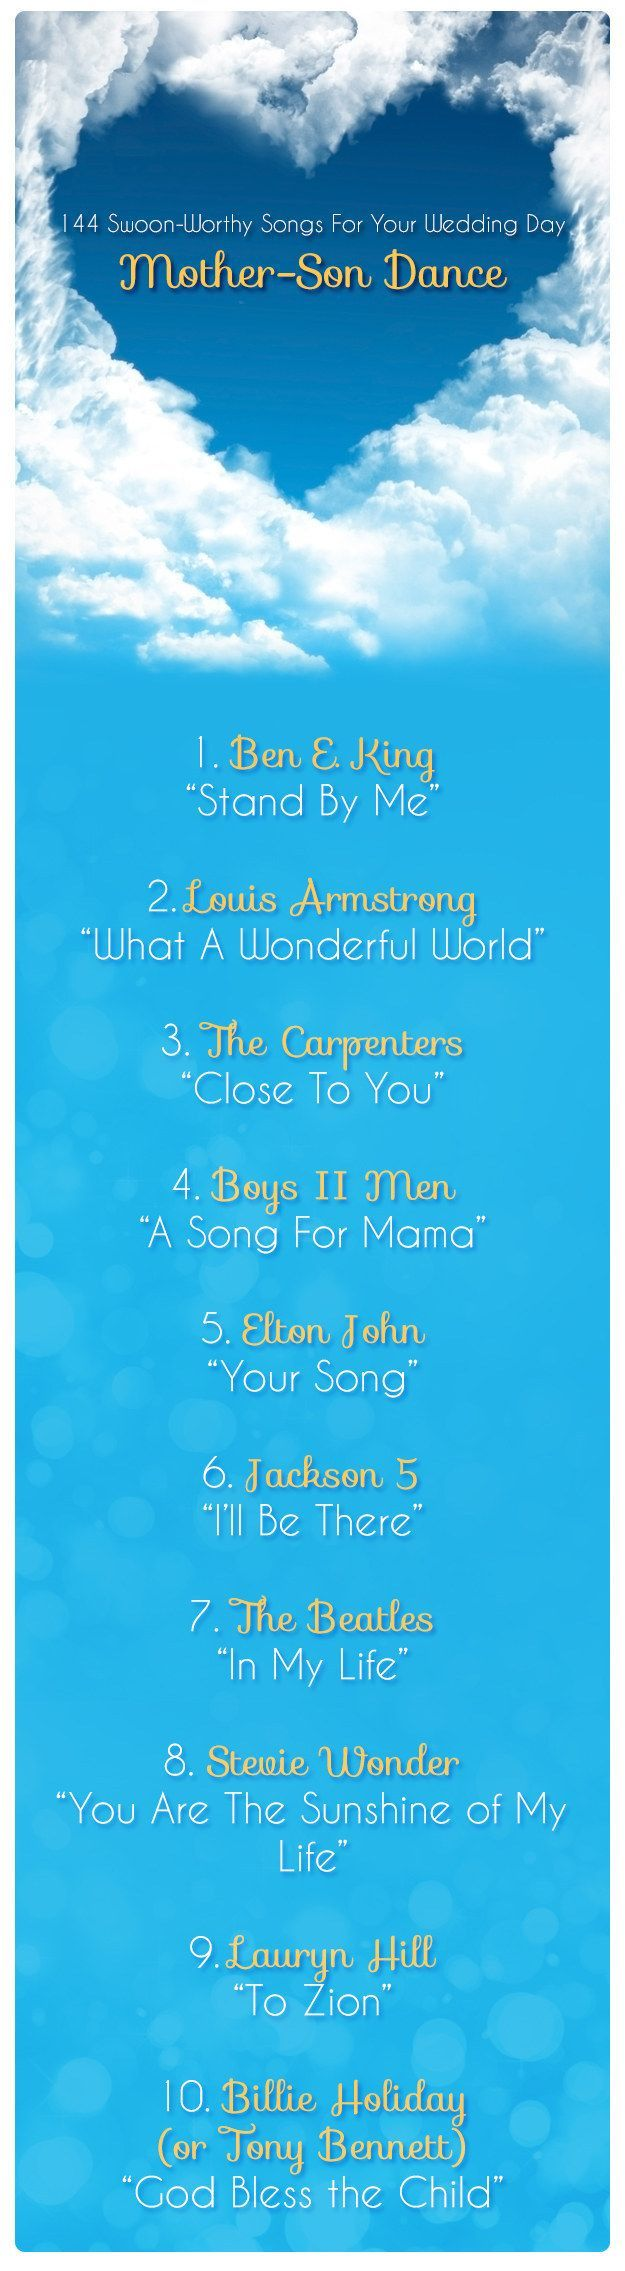 Beautiful Mother & Son Wedding Songs Photos - Styles & Ideas 2018 ...